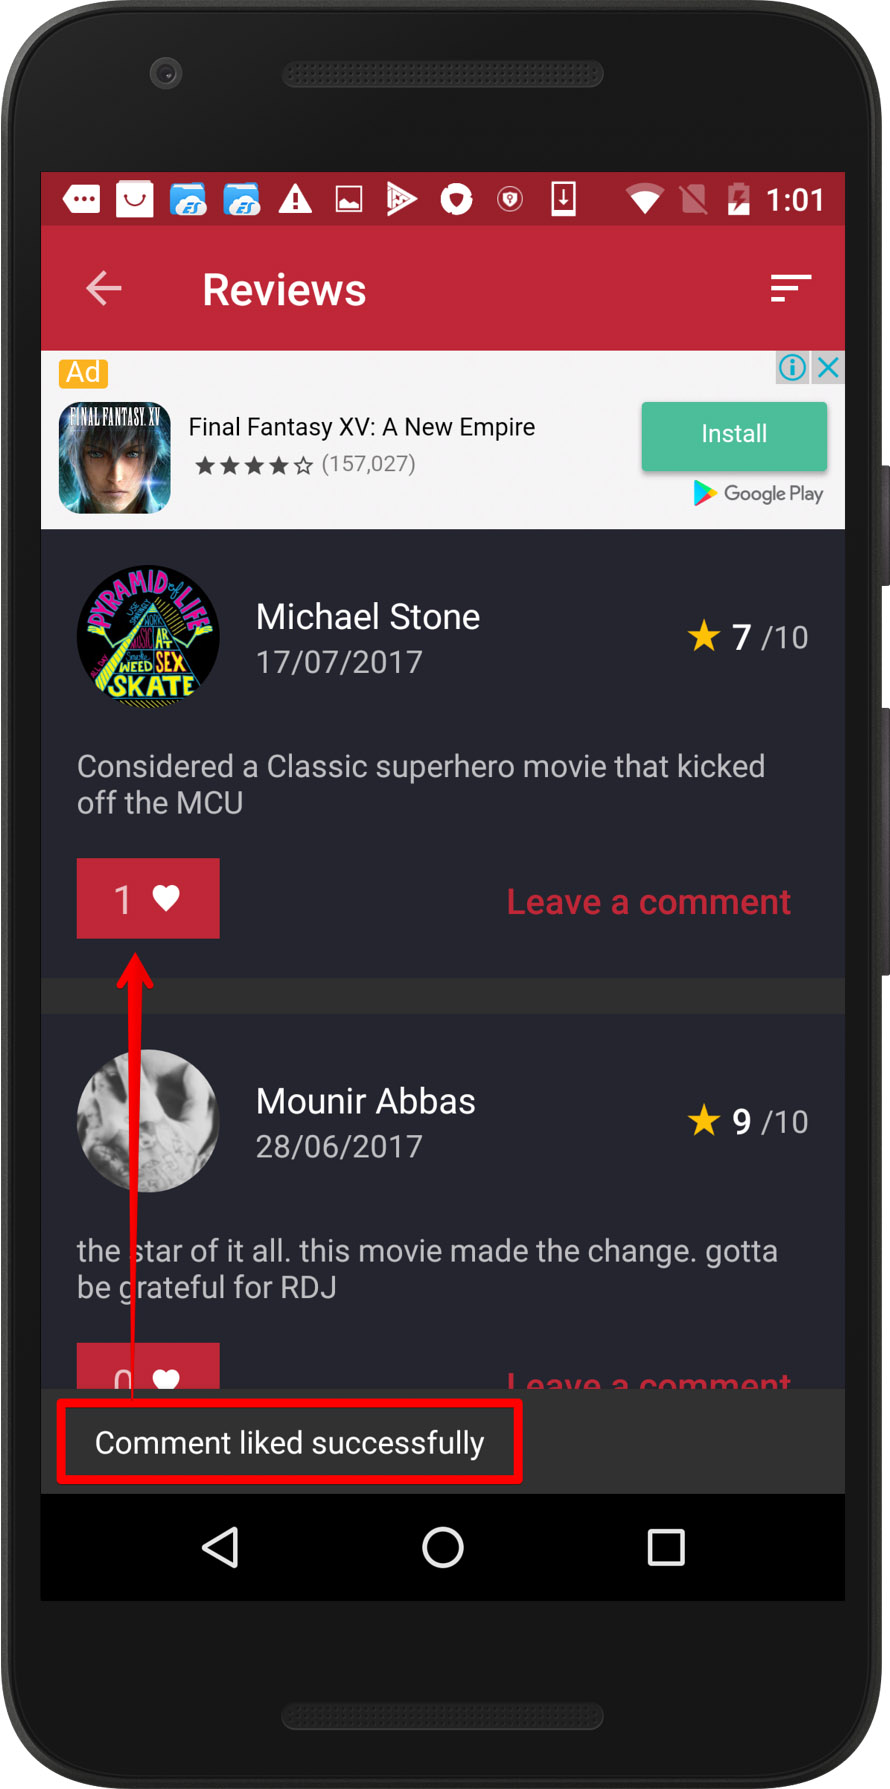 CineTrak app - review can be liked twice, screen 2 / Weekly bug crawl by QAwerk